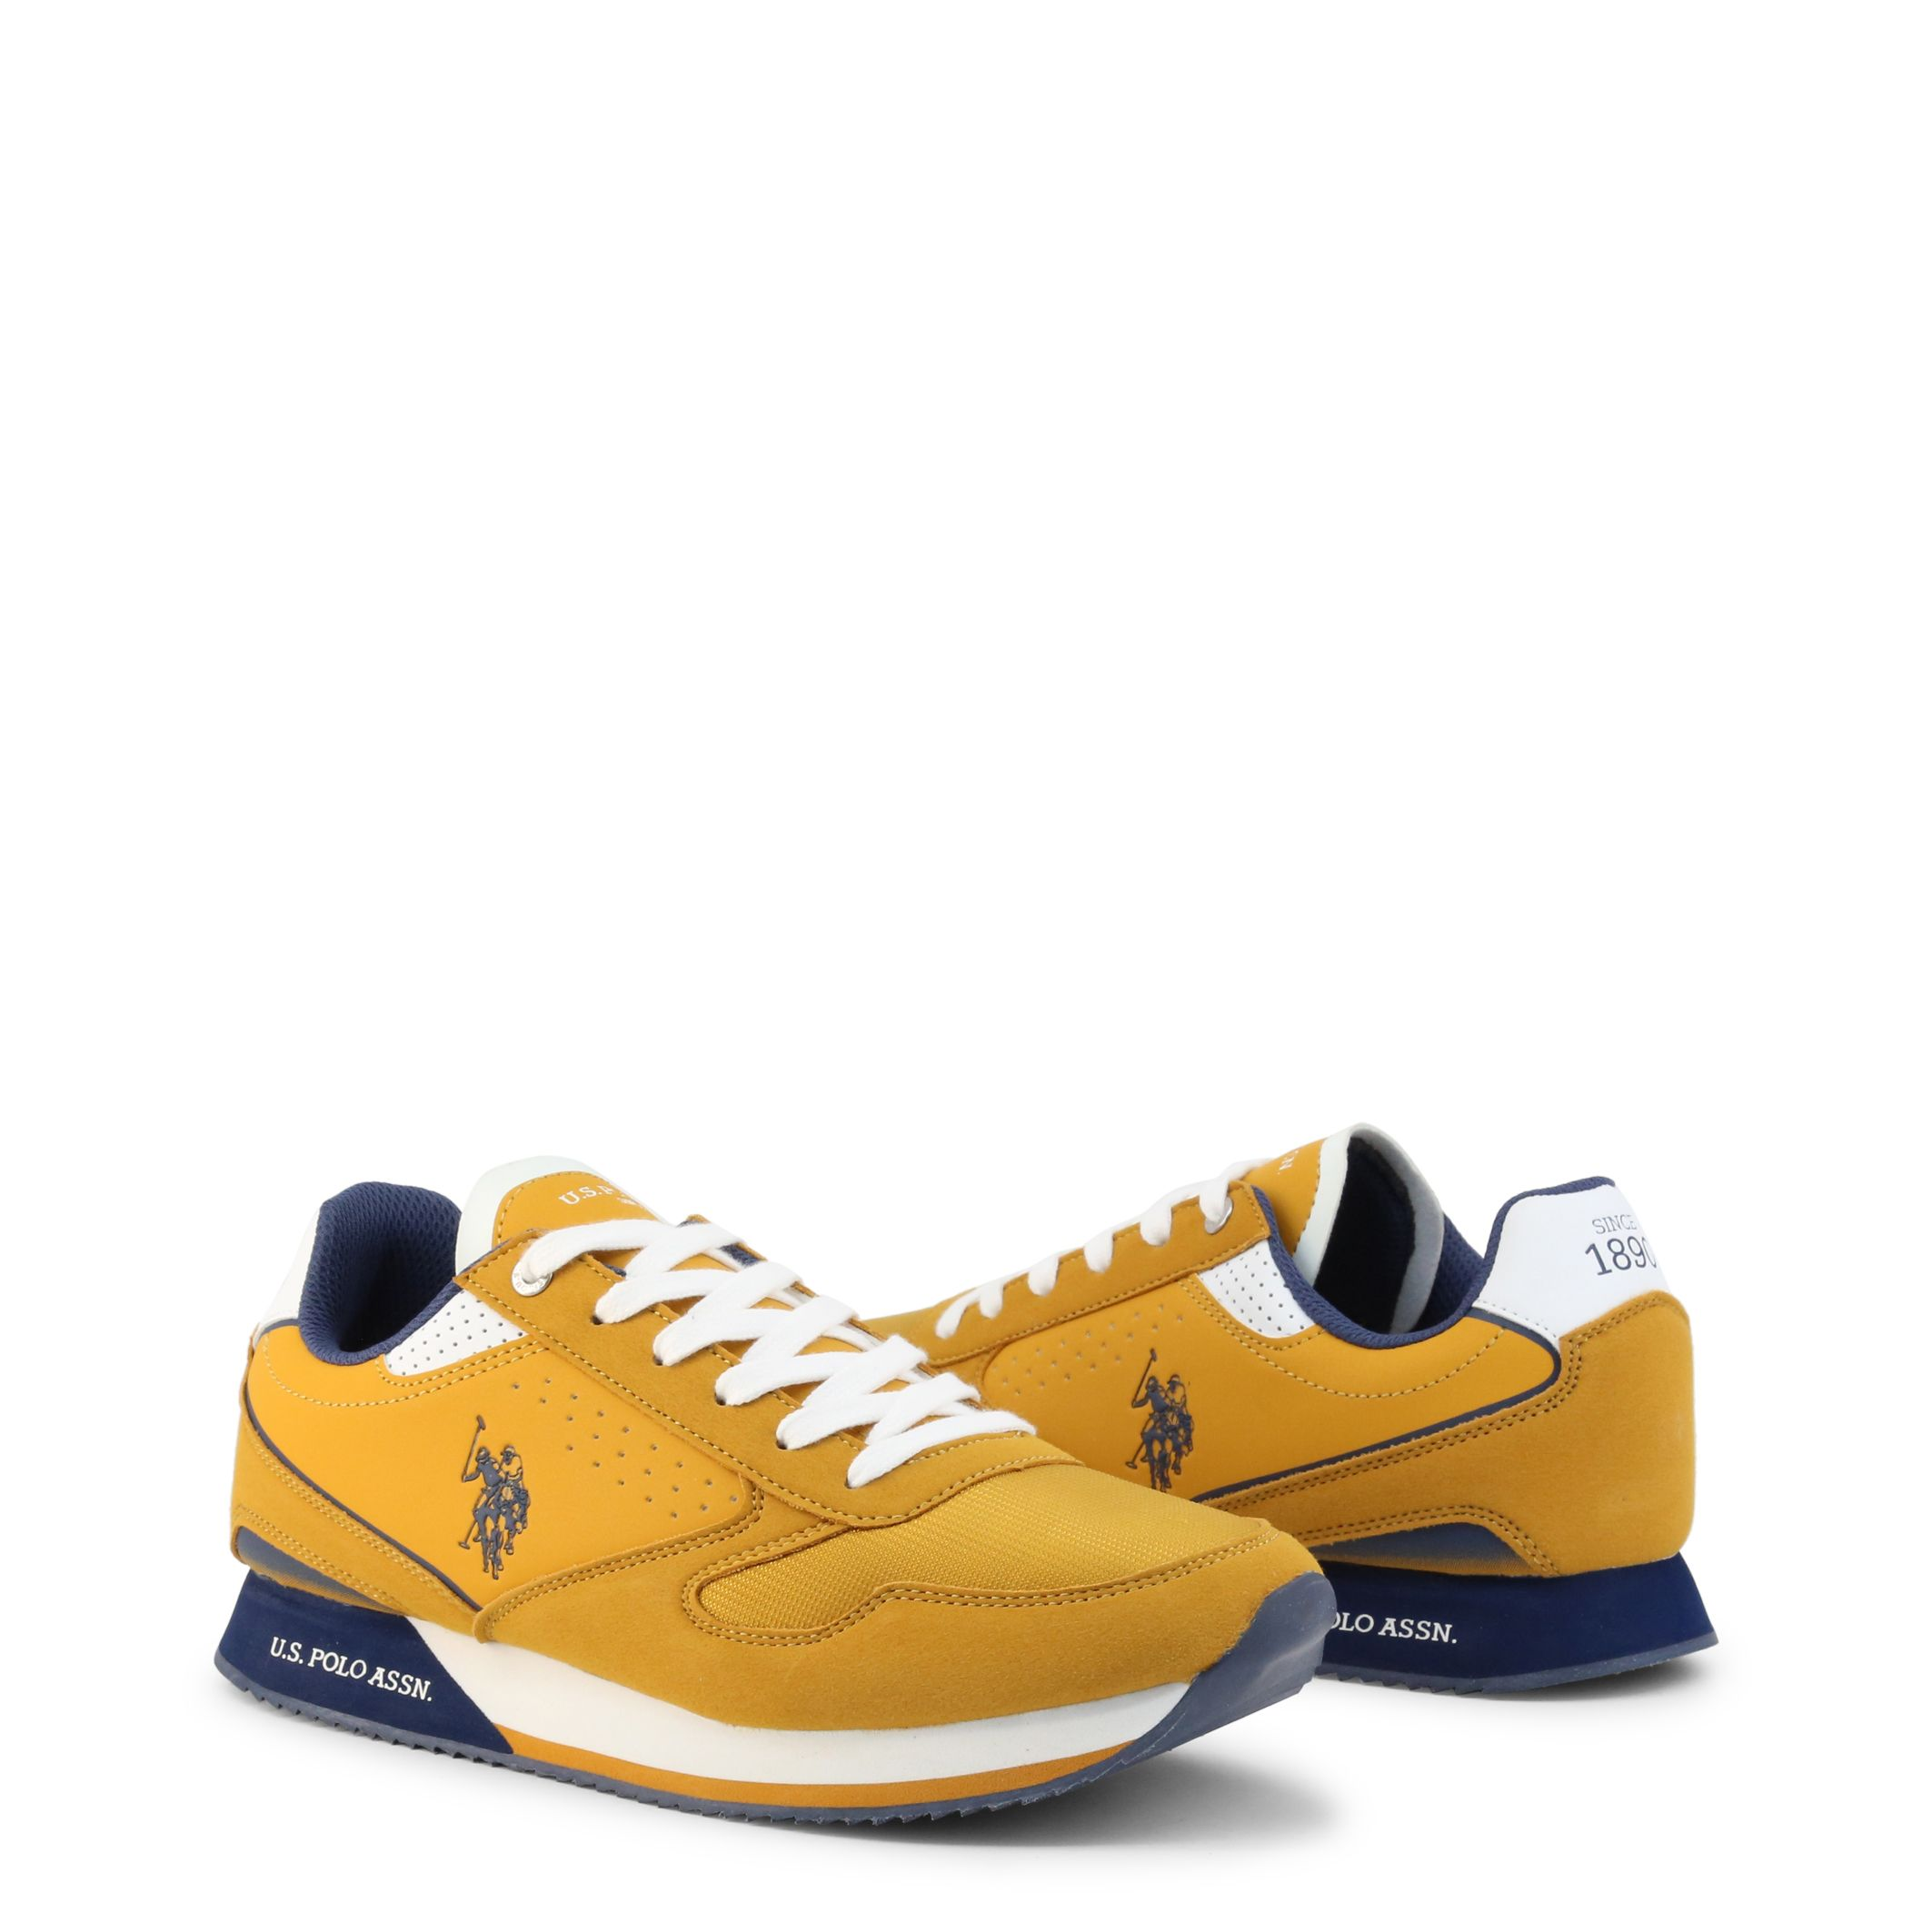 U.S. Polo Assn. - NOBIL4183S1_HY1 | You Fashion Outlet